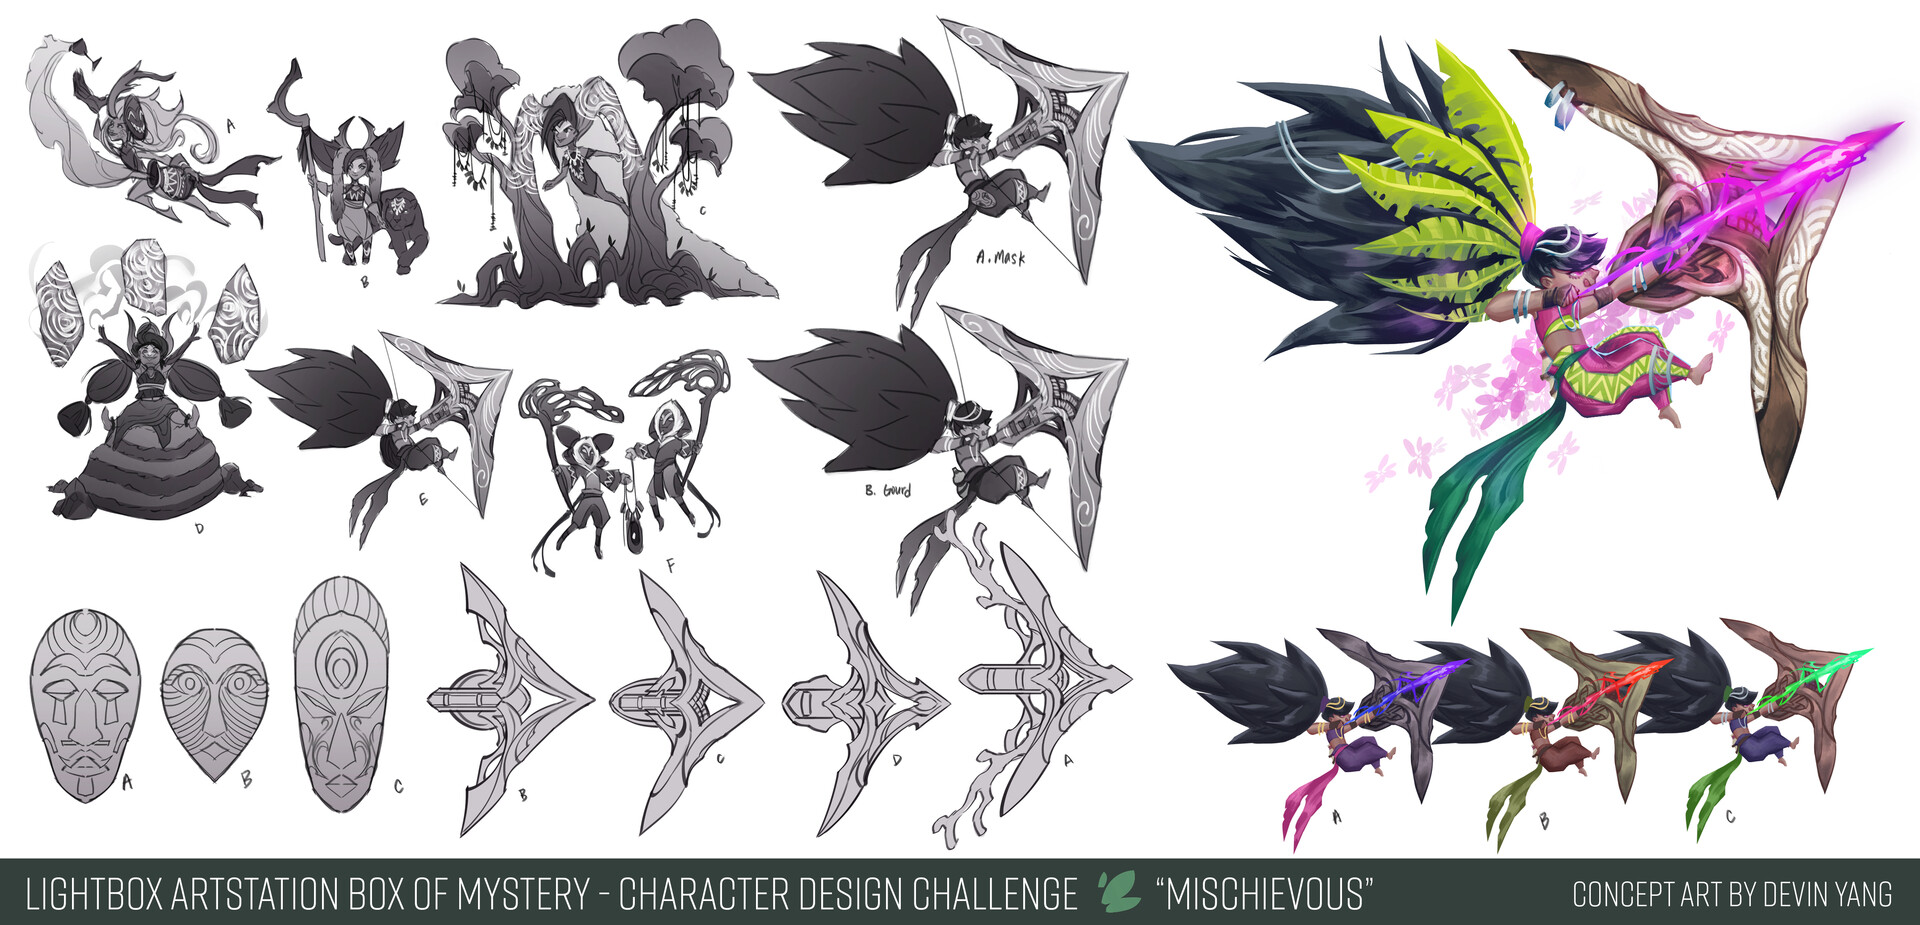 Sketches/exploration + callouts for Mischievous character